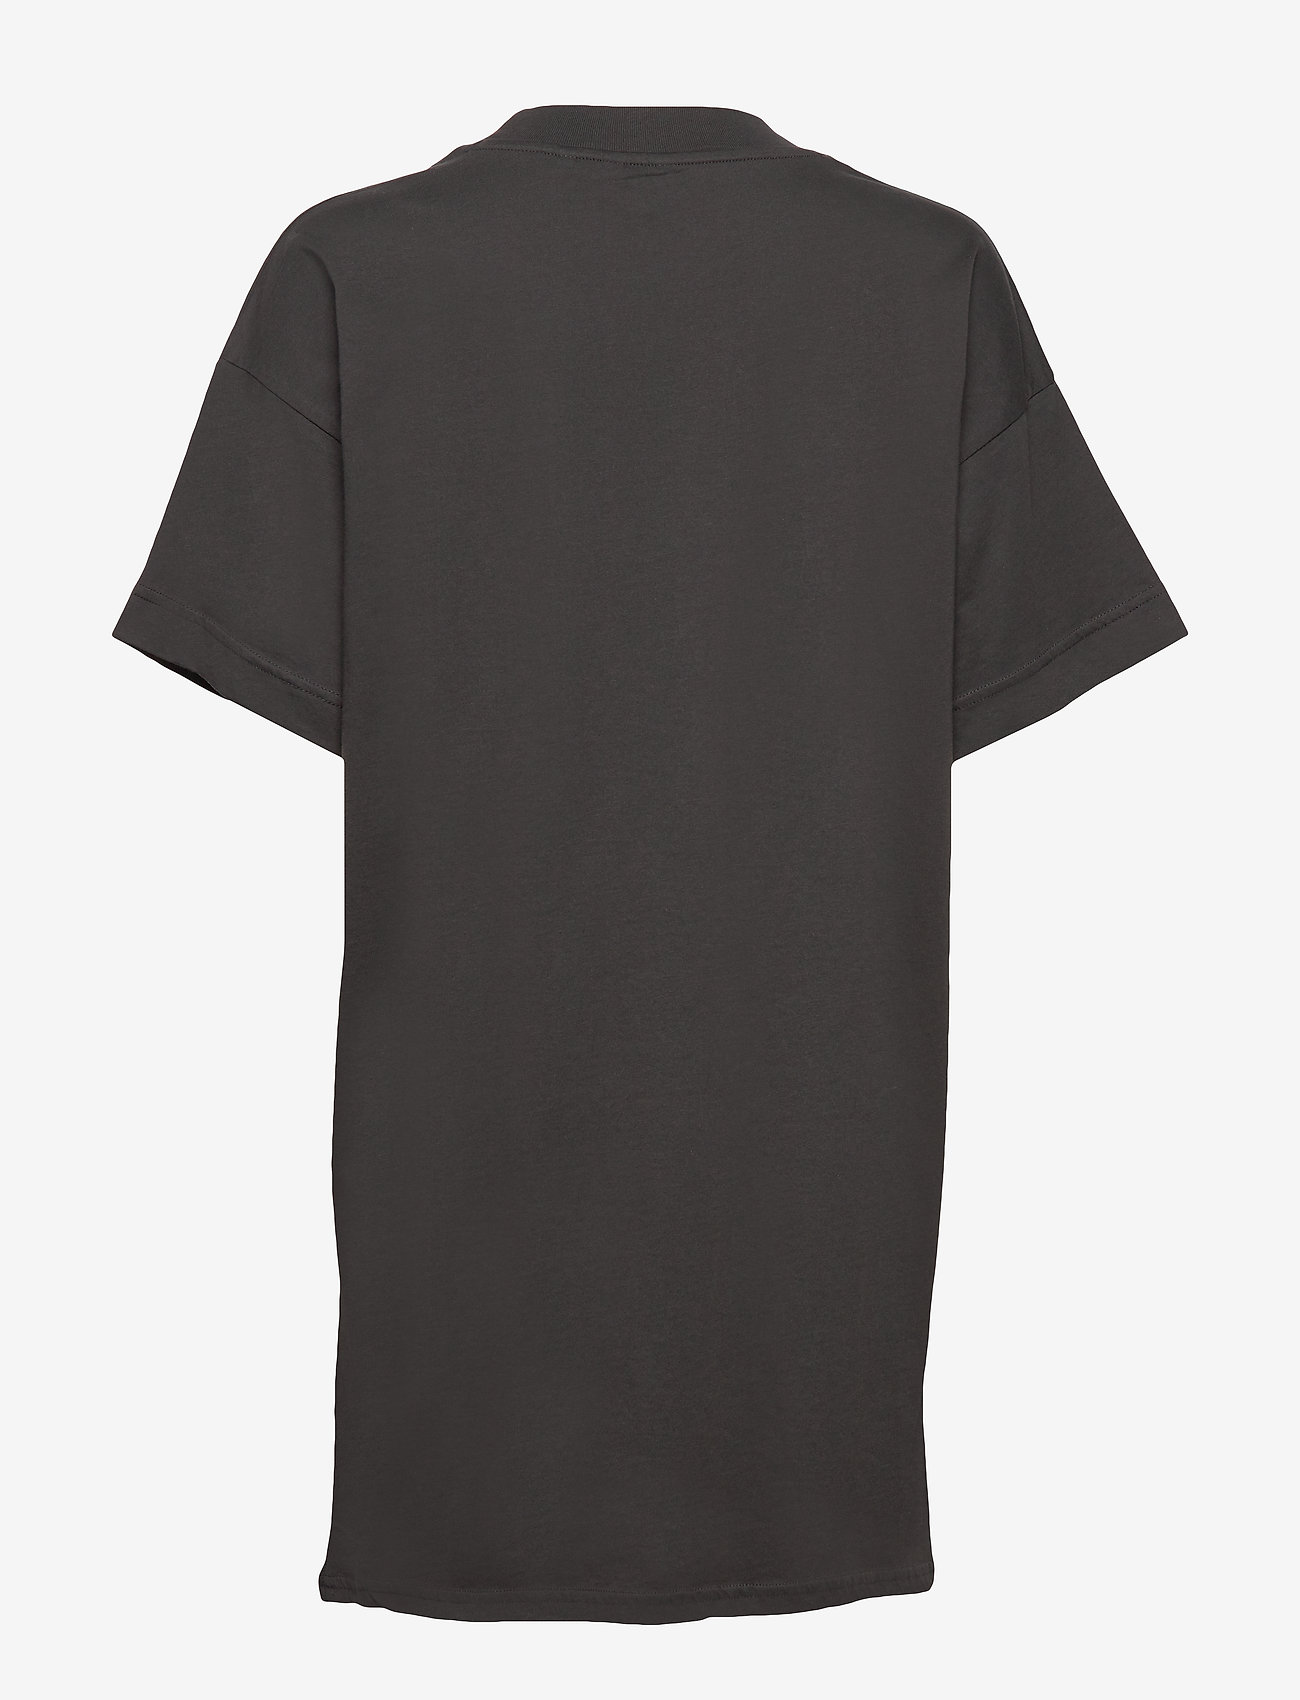 Wrangler Tee Dress - Dresses